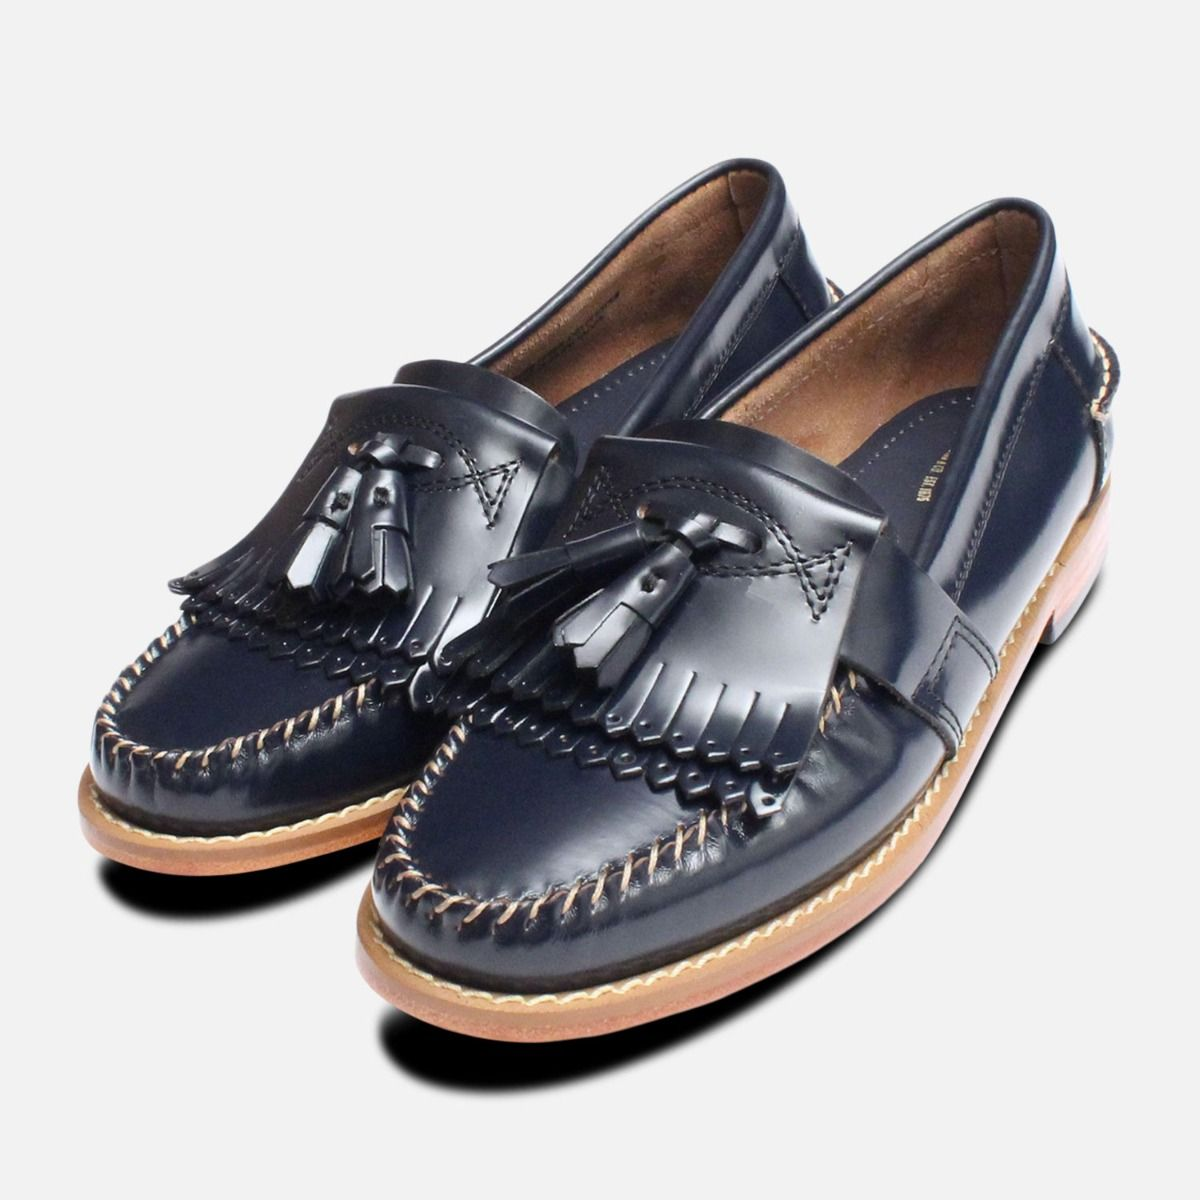 6fbc2038445 Navy Blue Ladies Double Fringe Bass Loafer Shoes